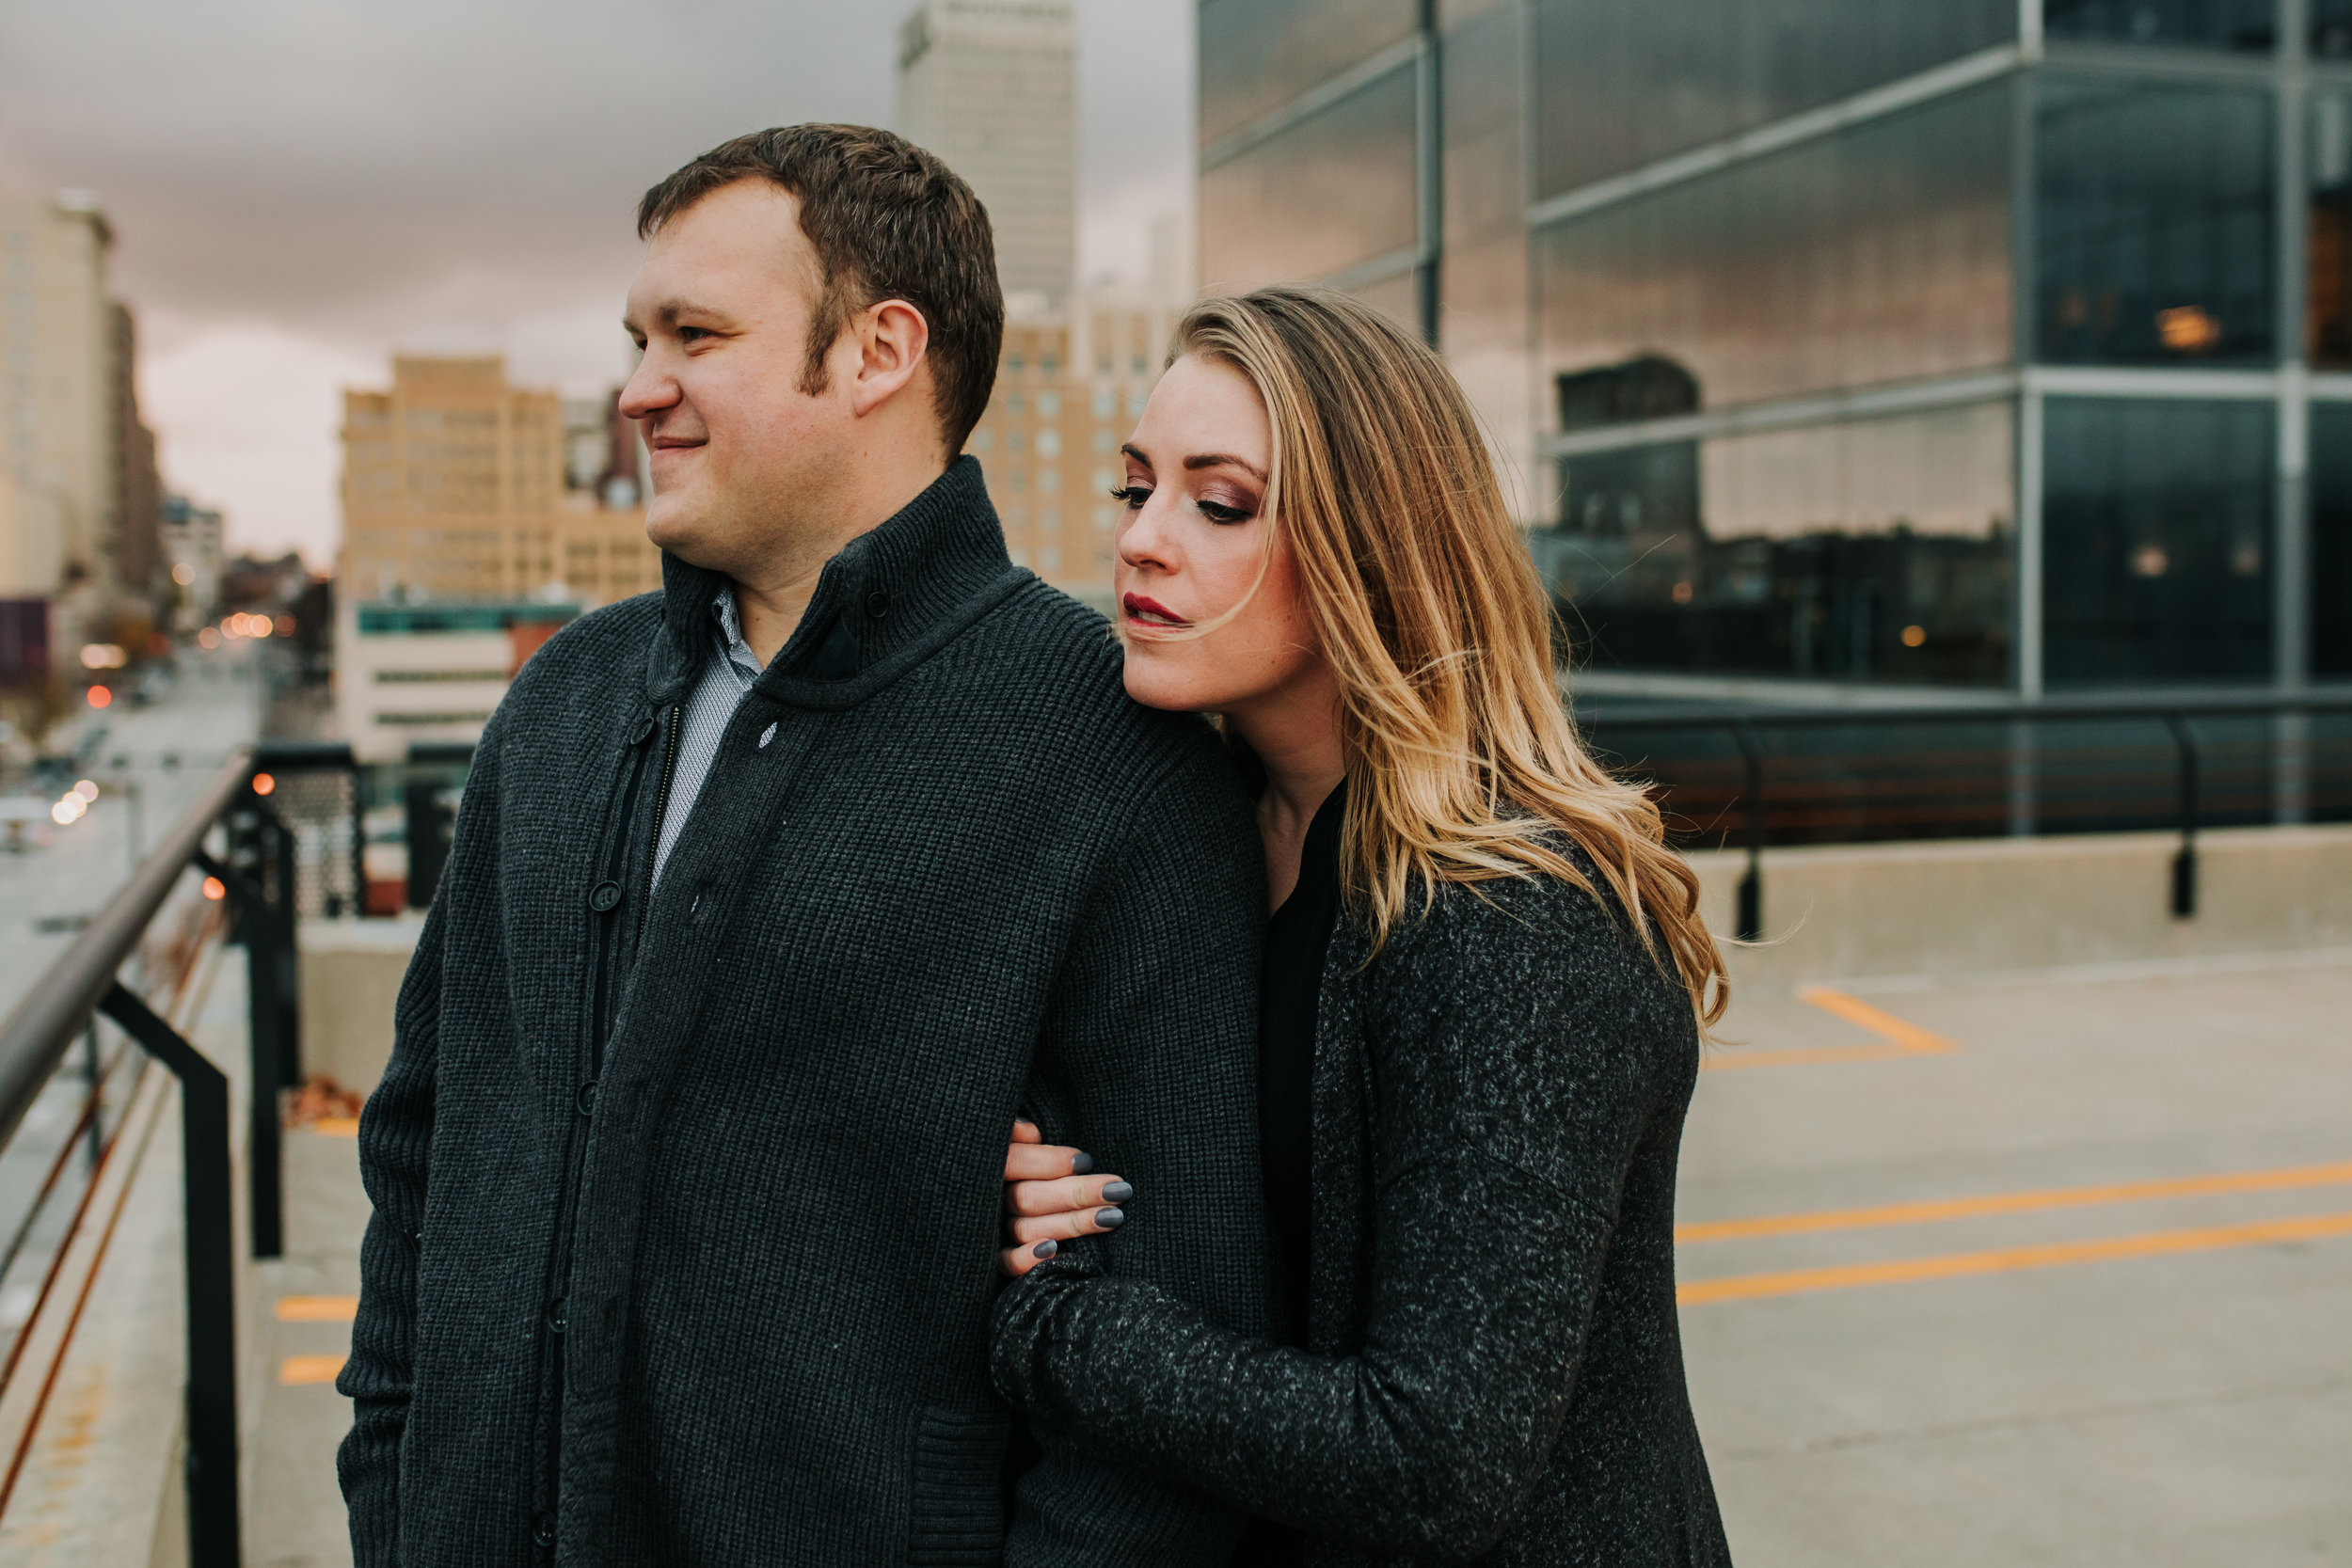 Meghan & Igor - Engaged - Nathaniel Jensen Photography - Omaha Nebraska Wedding Photograper-114.jpg